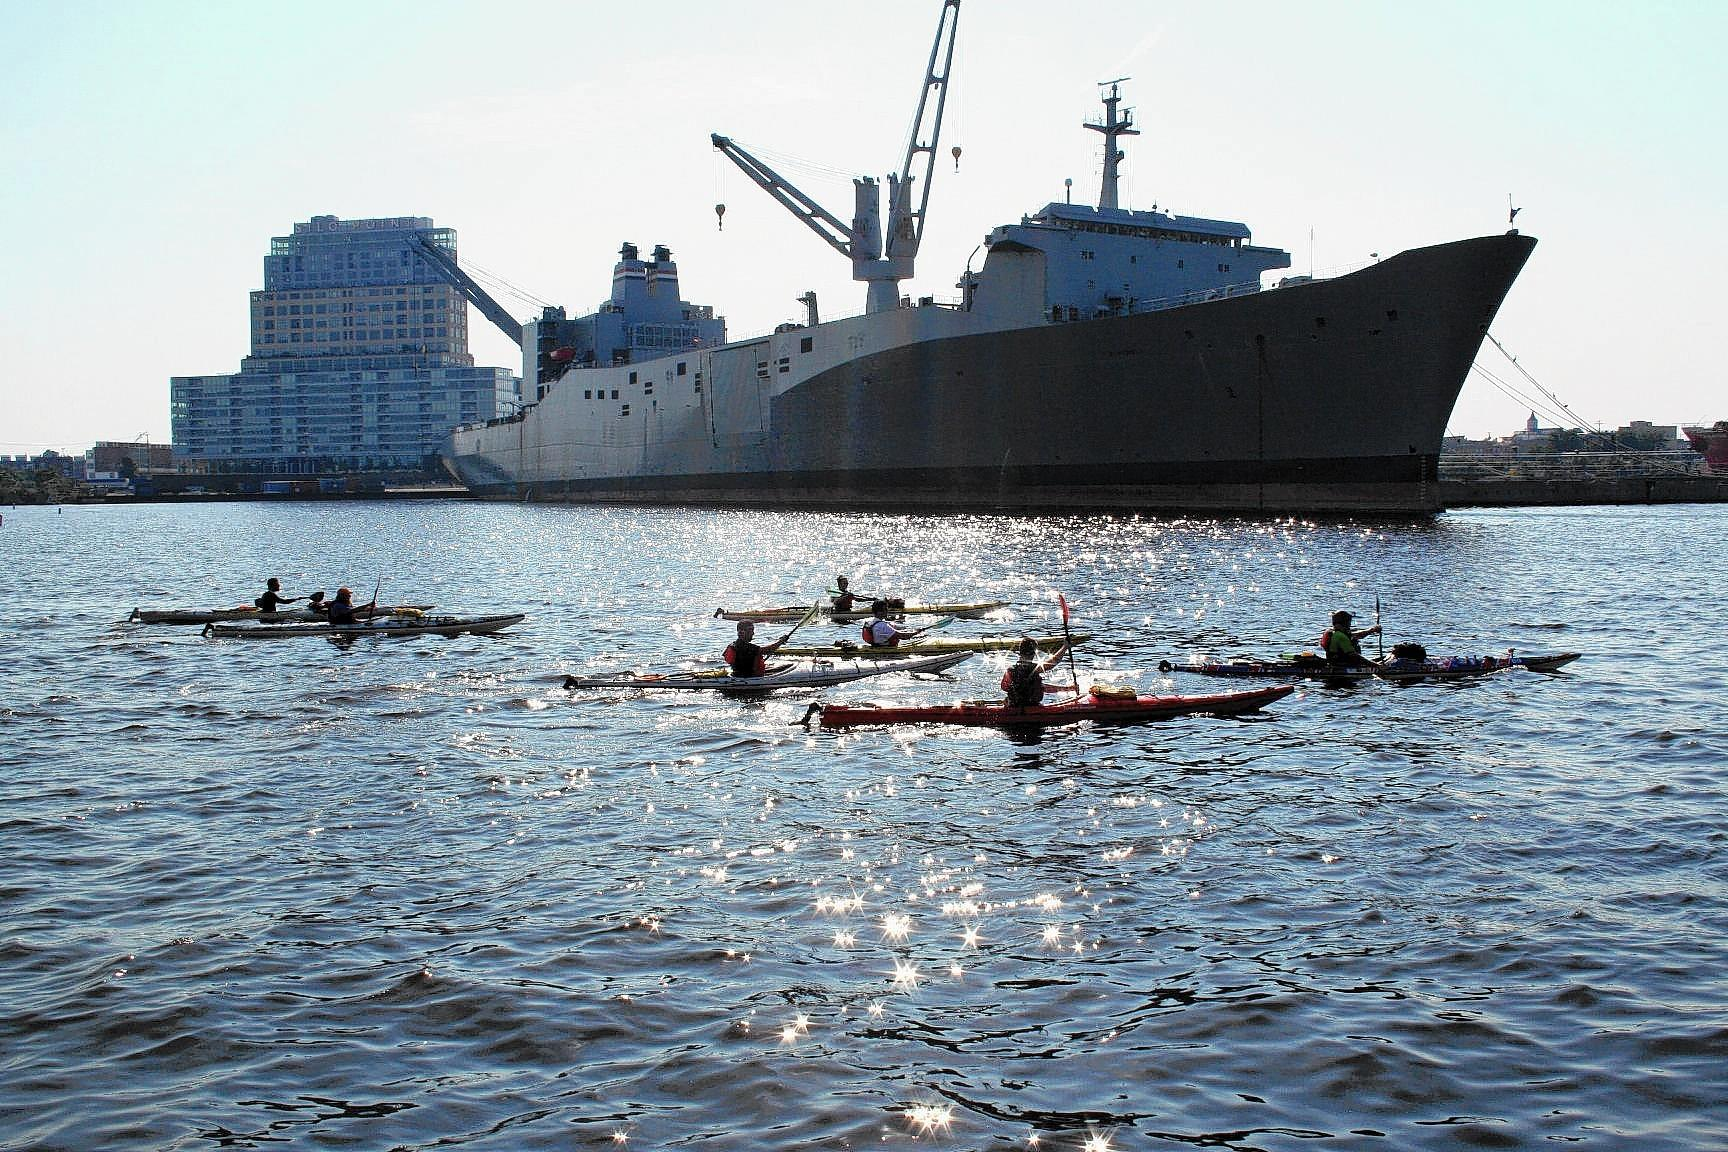 Kayakers arrive in Baltimore's harbor on Sept. 21, the final leg of a journey that had begun six days before in Ocean City.